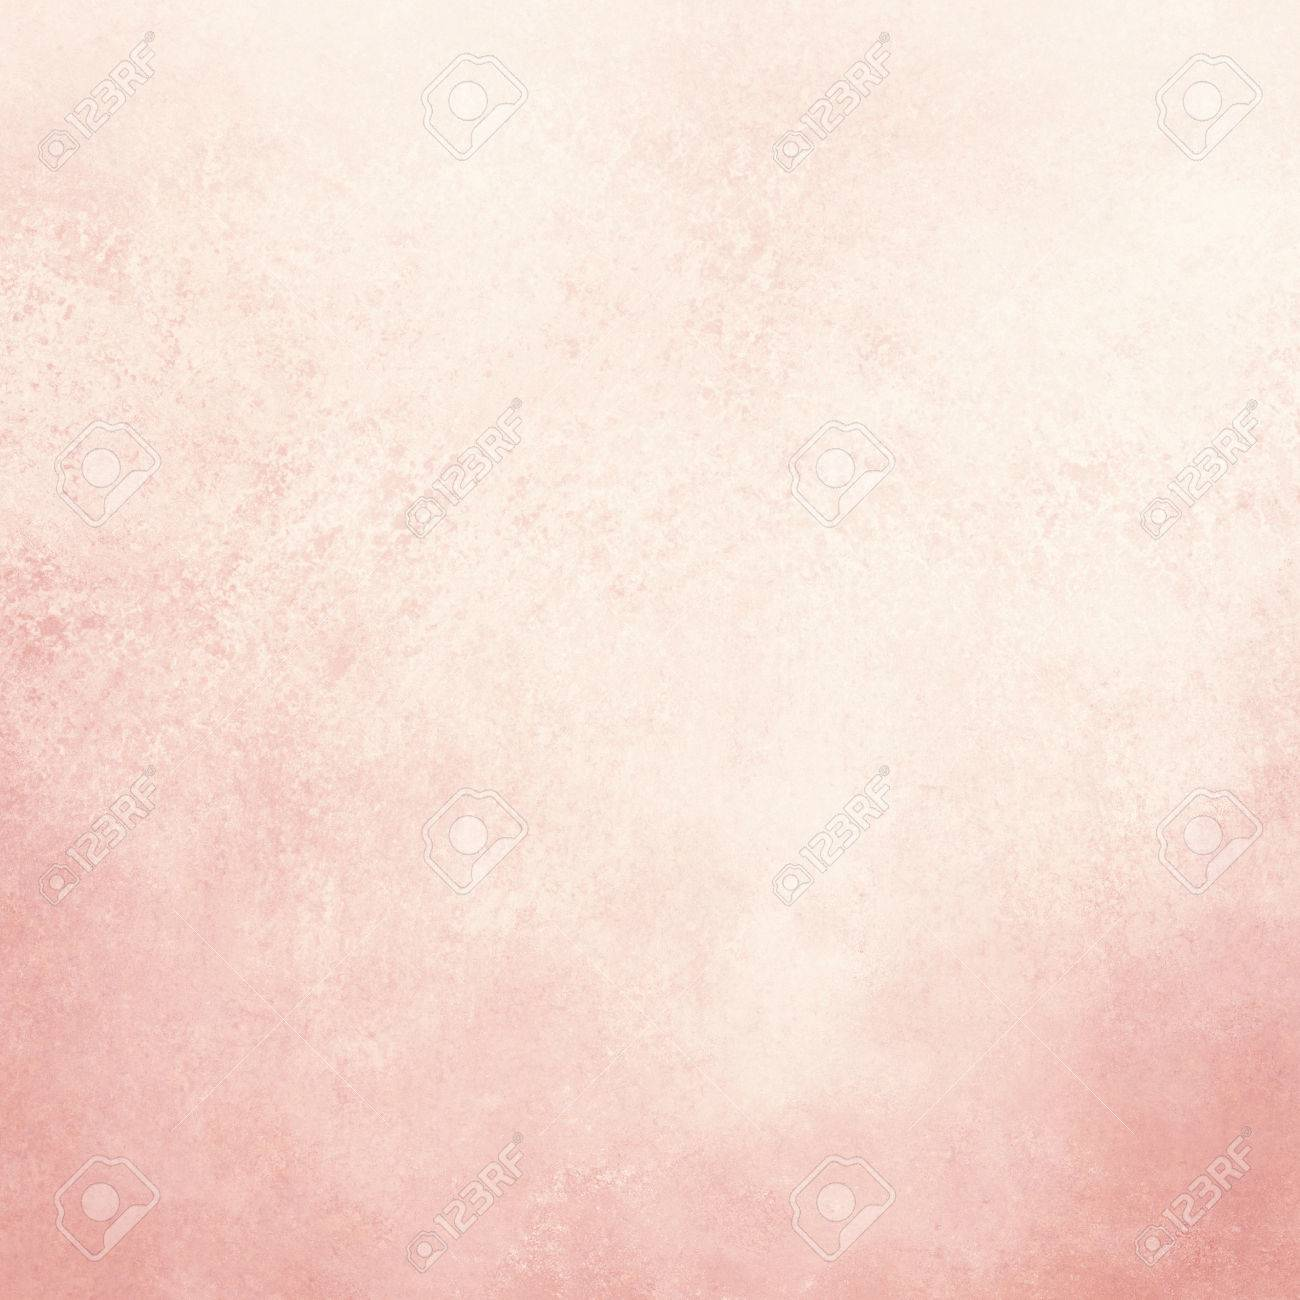 Vintage Old White Paper Background With Distressed Pink Grunge